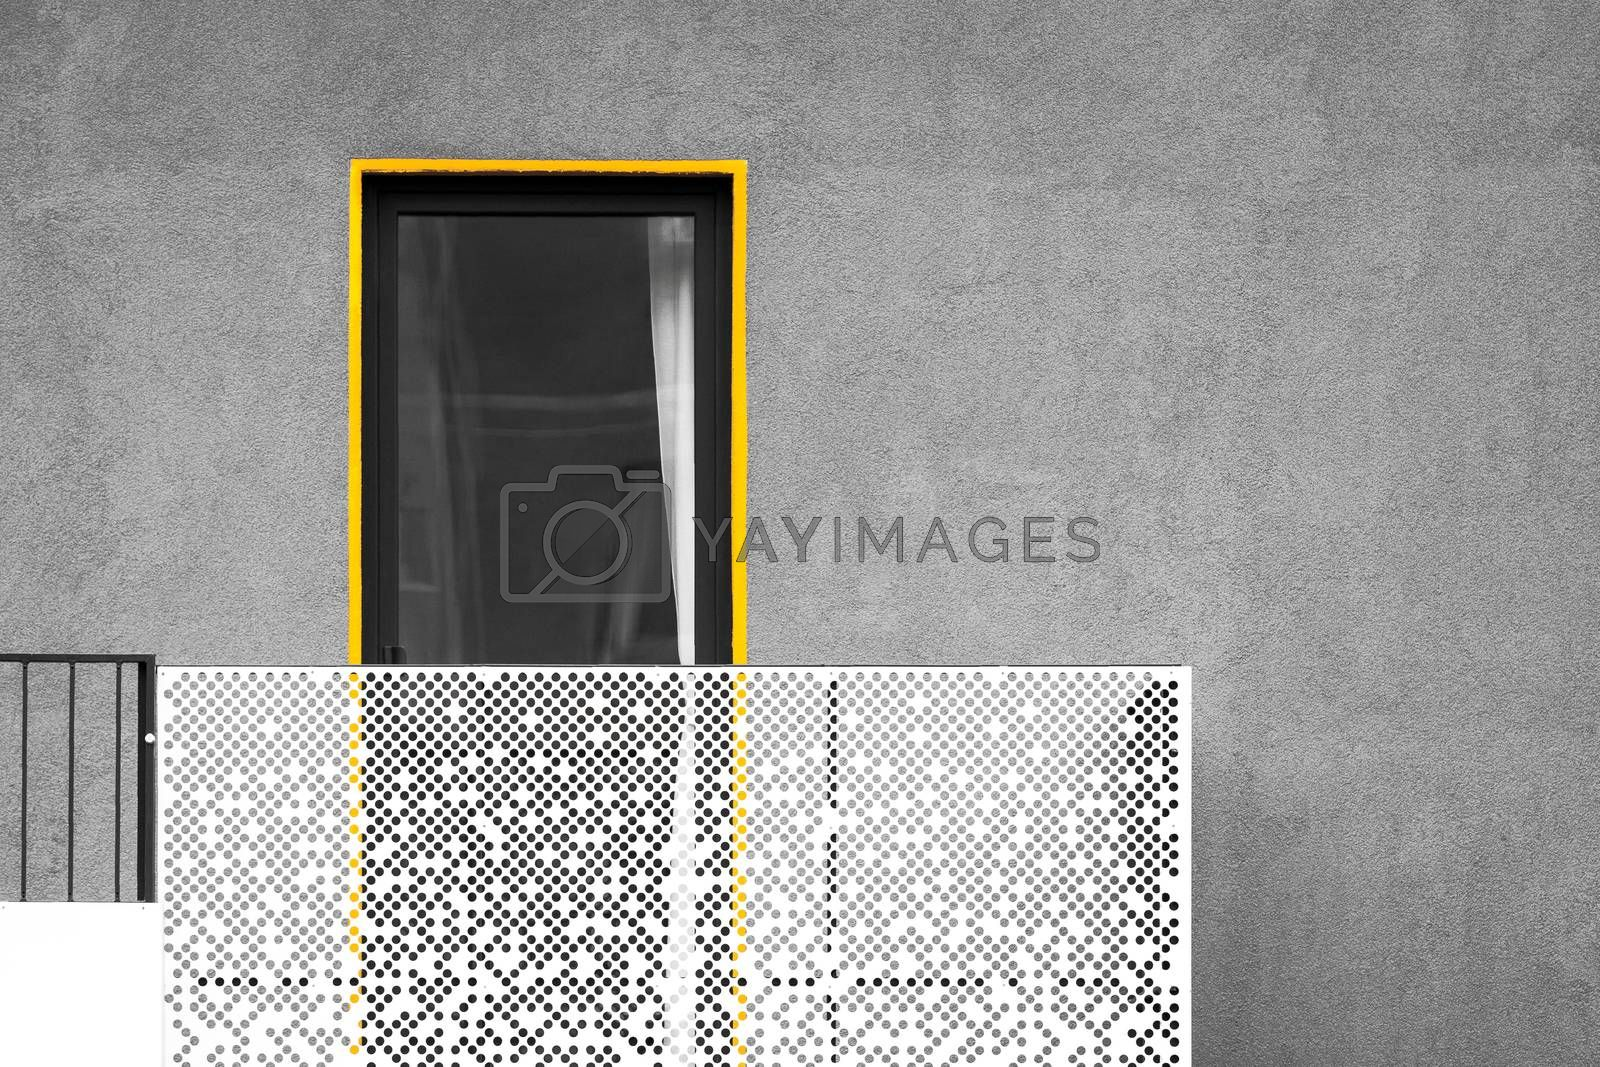 Abstract modern architecture with balcony and window by Vaidas Bucys